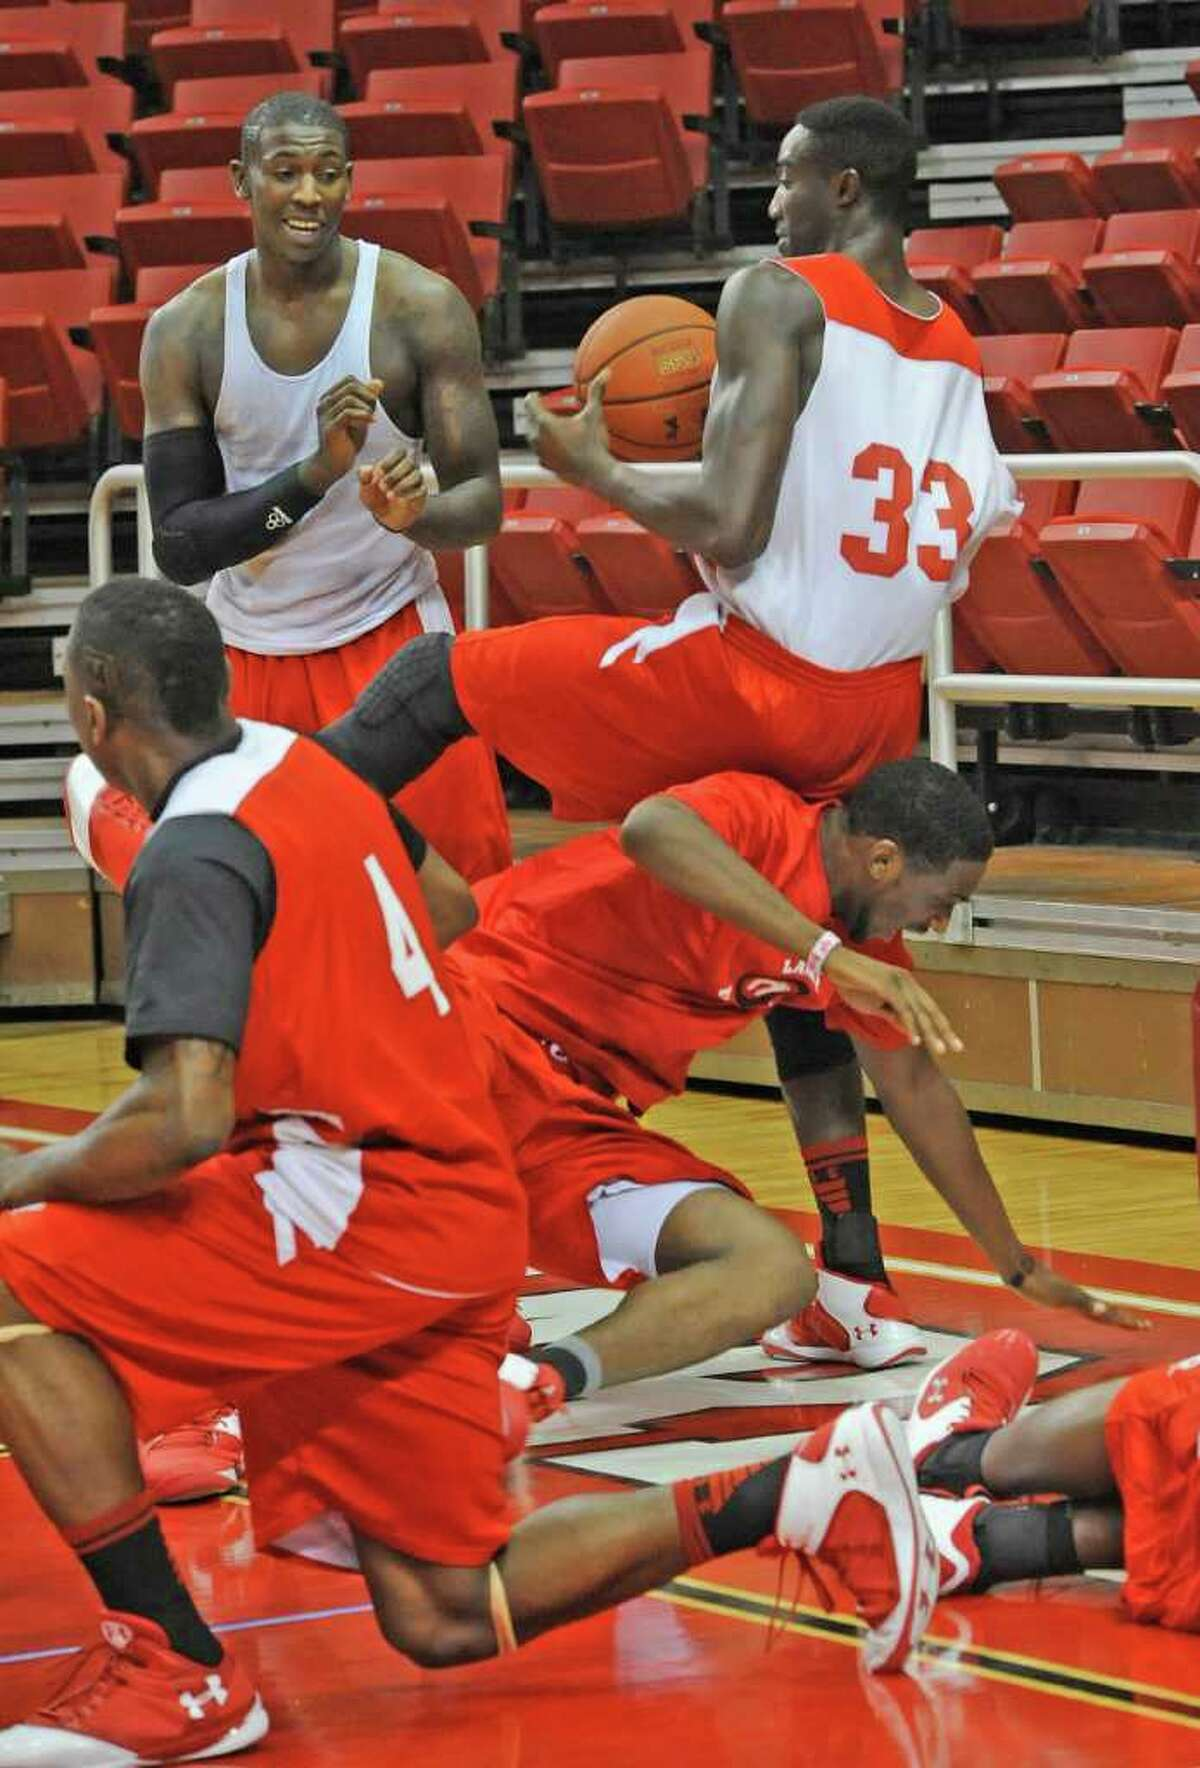 Lamar Cardinal #33, Osas Ebomwonyi, right, holds onto the ball while his teammates fall to the floor chasing it during drills Monday afternoon. After the practice, the Lamar University Cardinal basketball team was leaving the Montagne Center and heading to the Jack Brooks Regional Airport in Nederland to fly to Dayton Ohio for their first NCAA tournament game against Vermont. Dave Ryan/The Enterprise